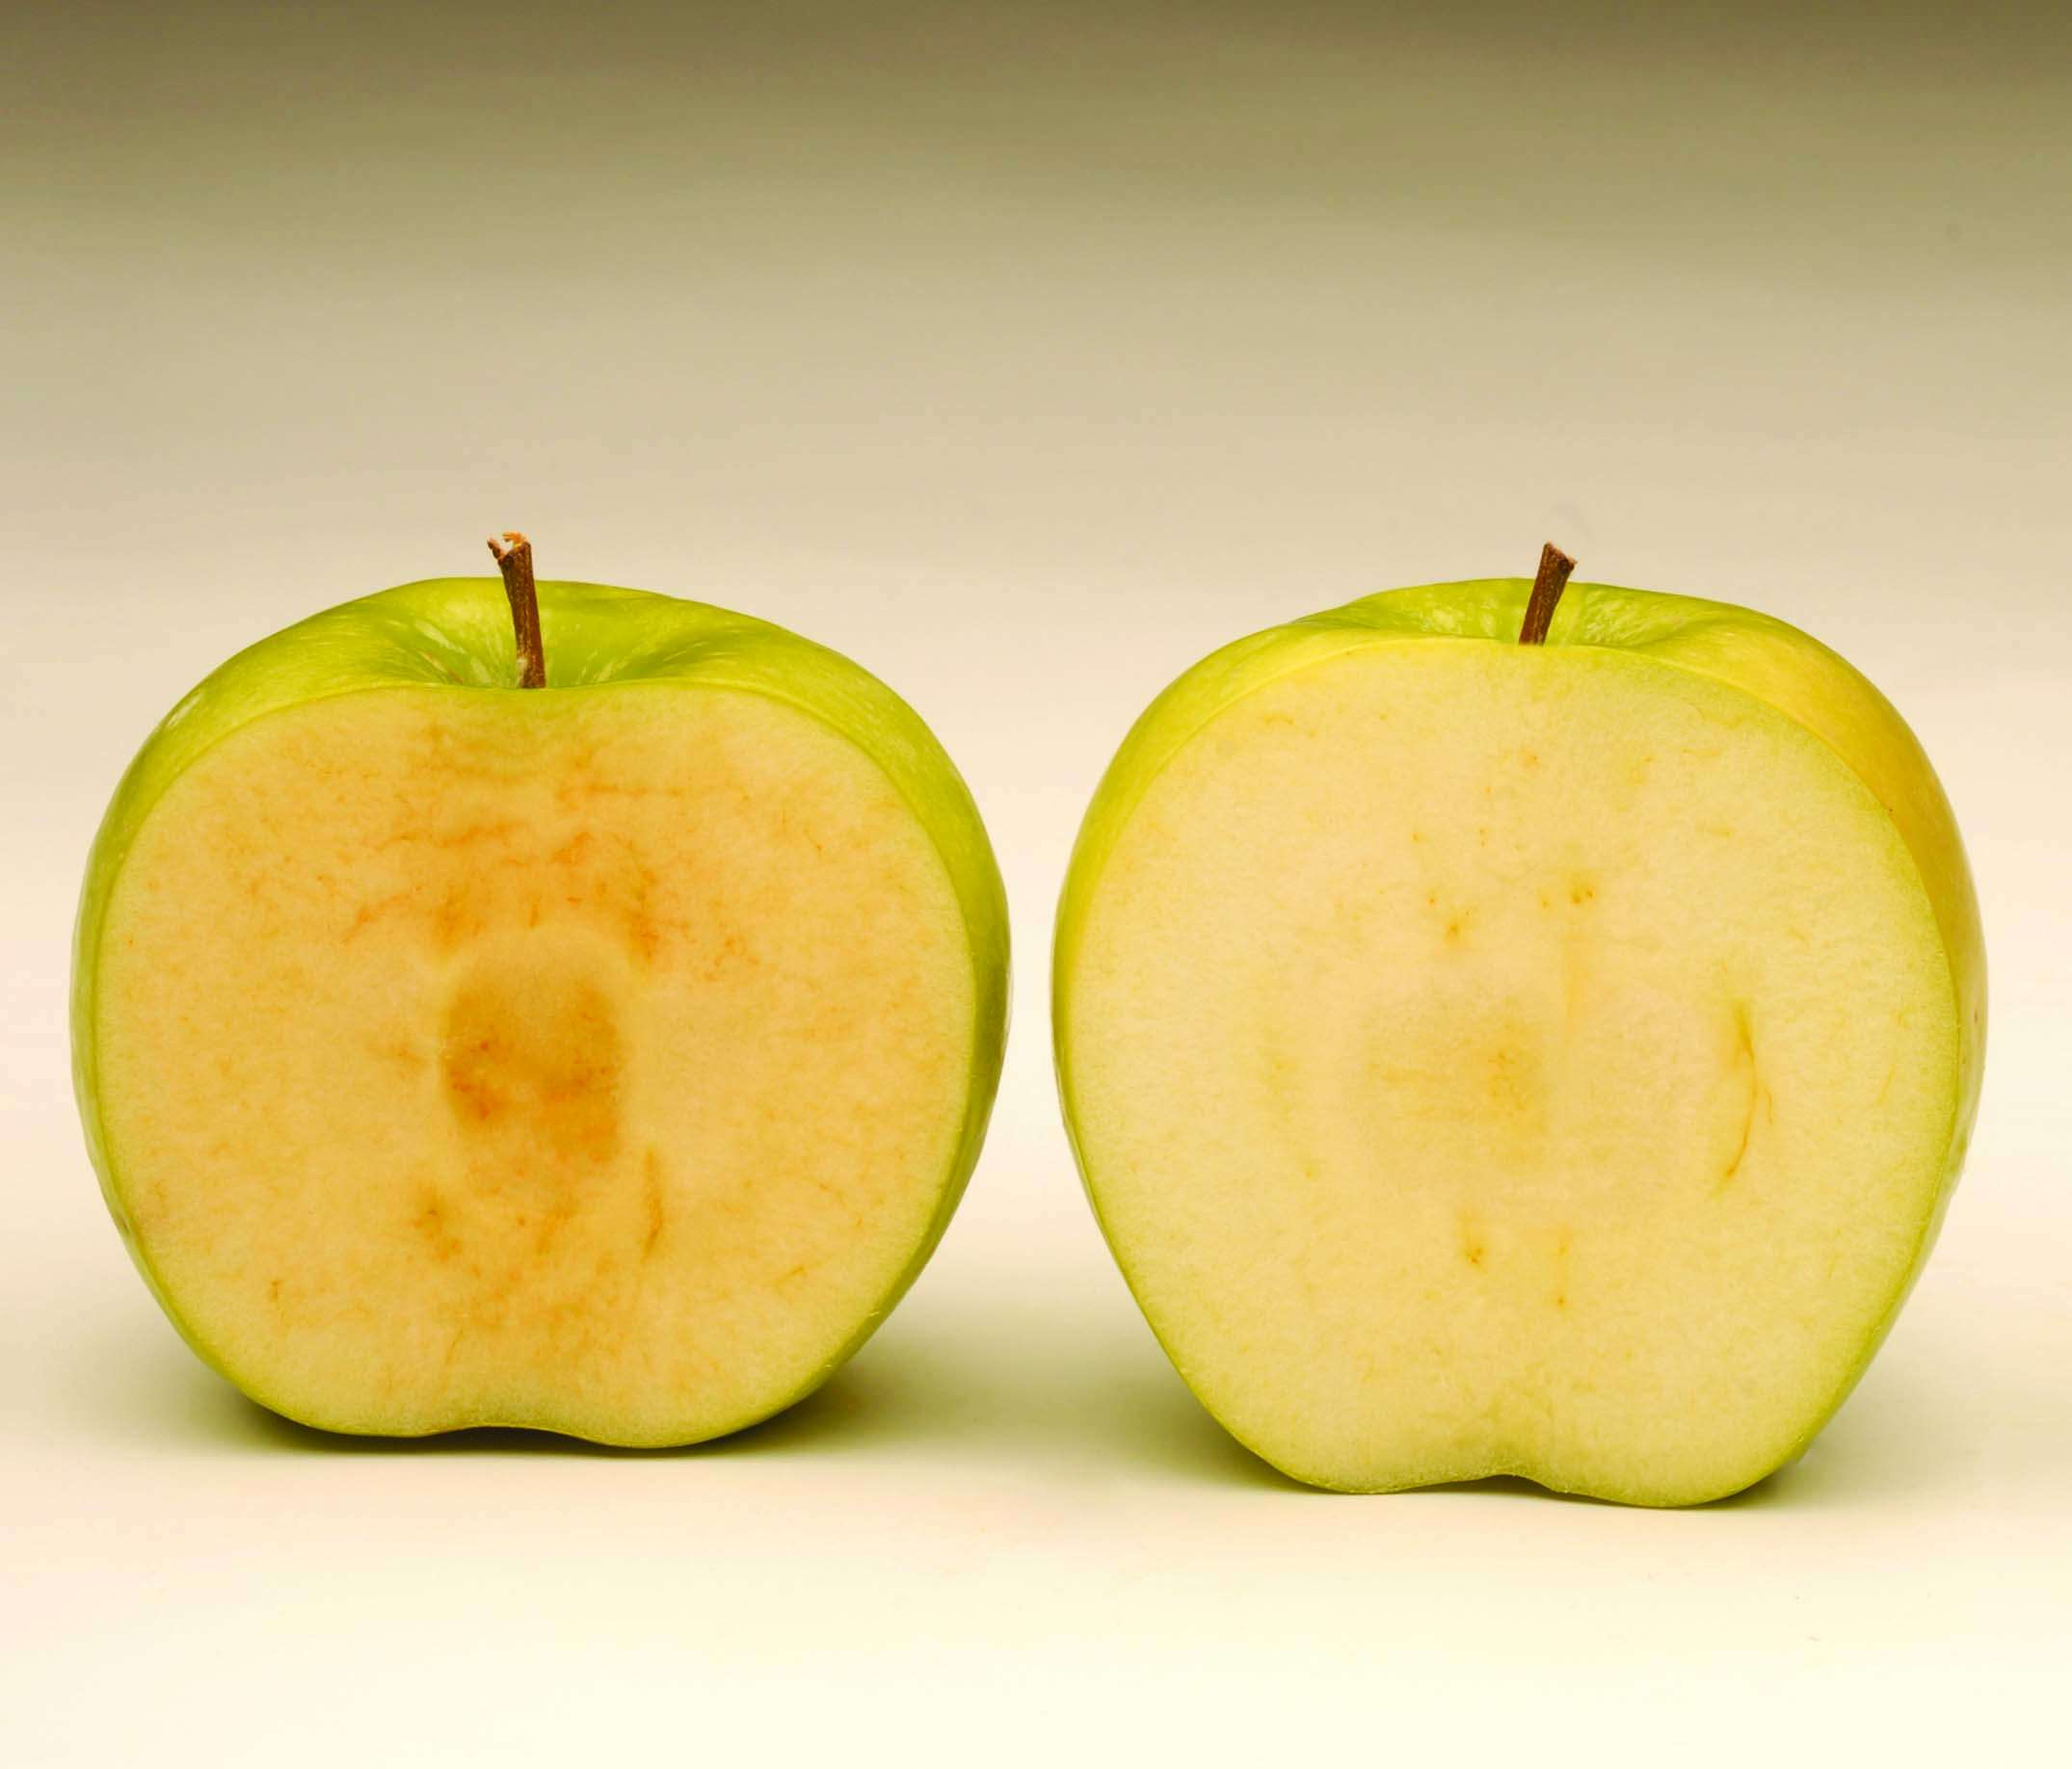 Conventional apple vs. Arctic apple